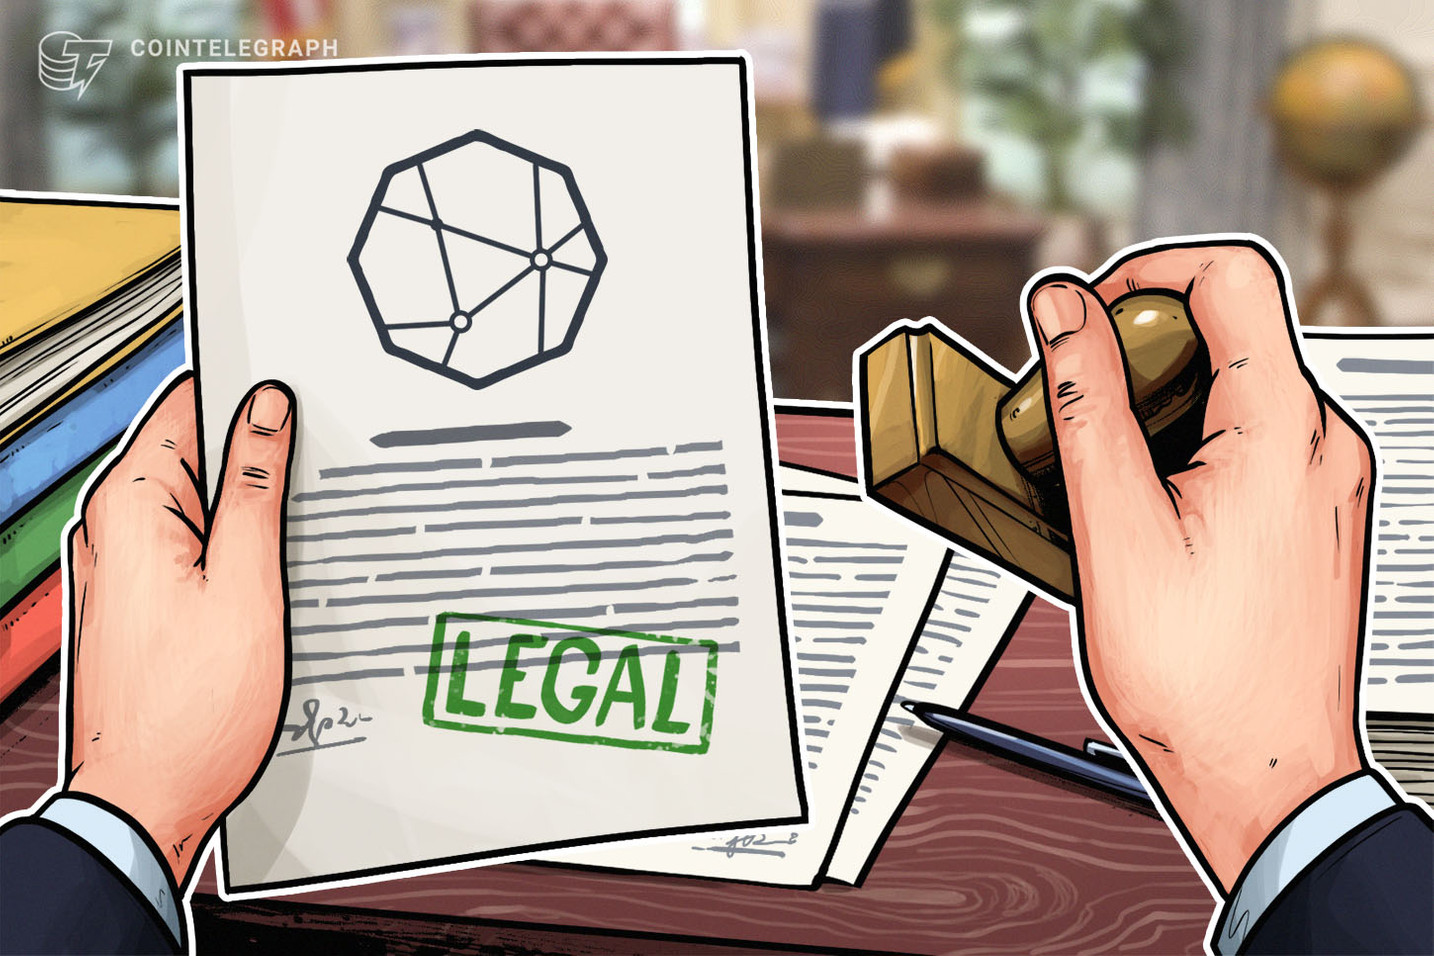 Ukraine: Economic Development and Trade Ministry Launches State Policy to Legalize Crypto